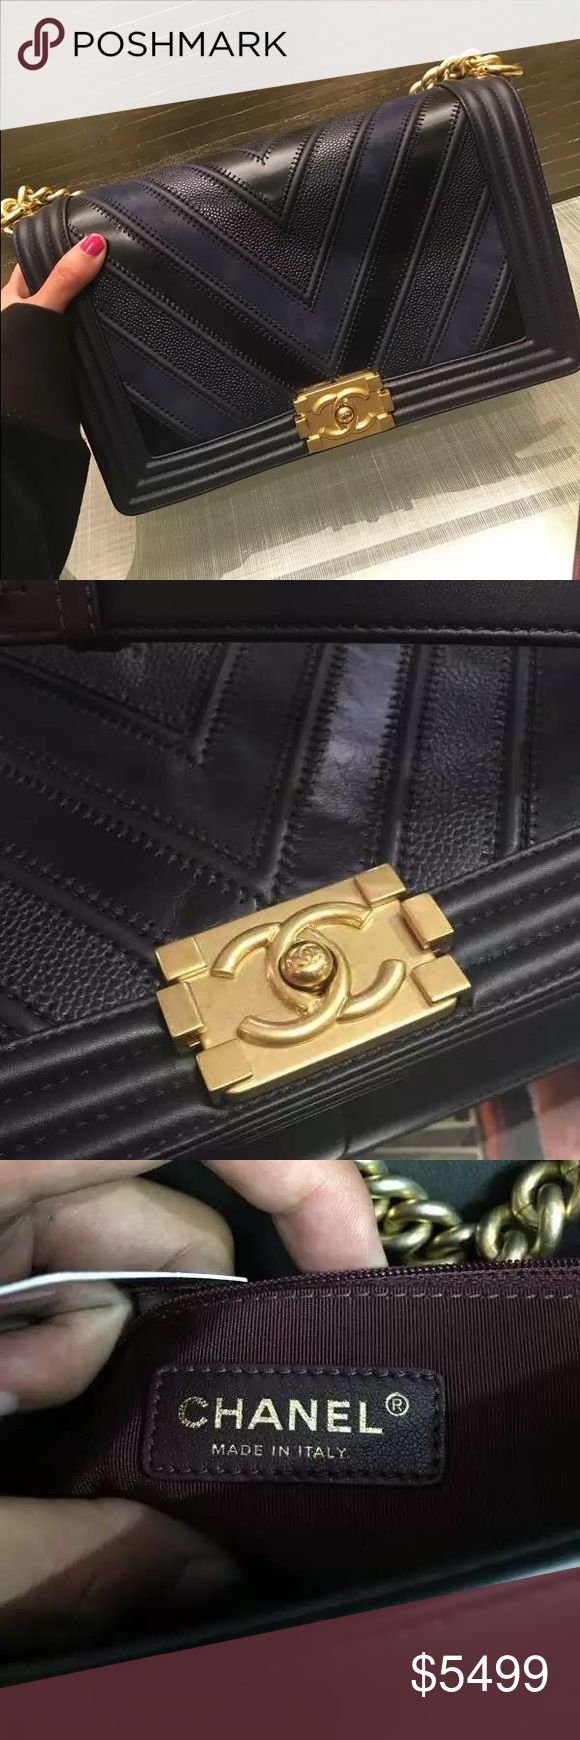 Auth Chanel 2016 Boy New Medium Chevron Flap Bag 100% GUARANTEED AUTHENTIC OR 10X YOUR MONEY BACK!!  PHOTOS ARE TAKEN OF THE EXACT SAME ITEM YOU WILL RECEIVE! WHAT YOU SEE IS WHAT YOU GET*** PLEASE VISIT OUR WEBSITE AT WWW.AUTHENTICLUXURIESTW.COM or email me at authenticluxuries11@gmail.com for more detailed photos =). CHANEL Bags Shoulder Bags